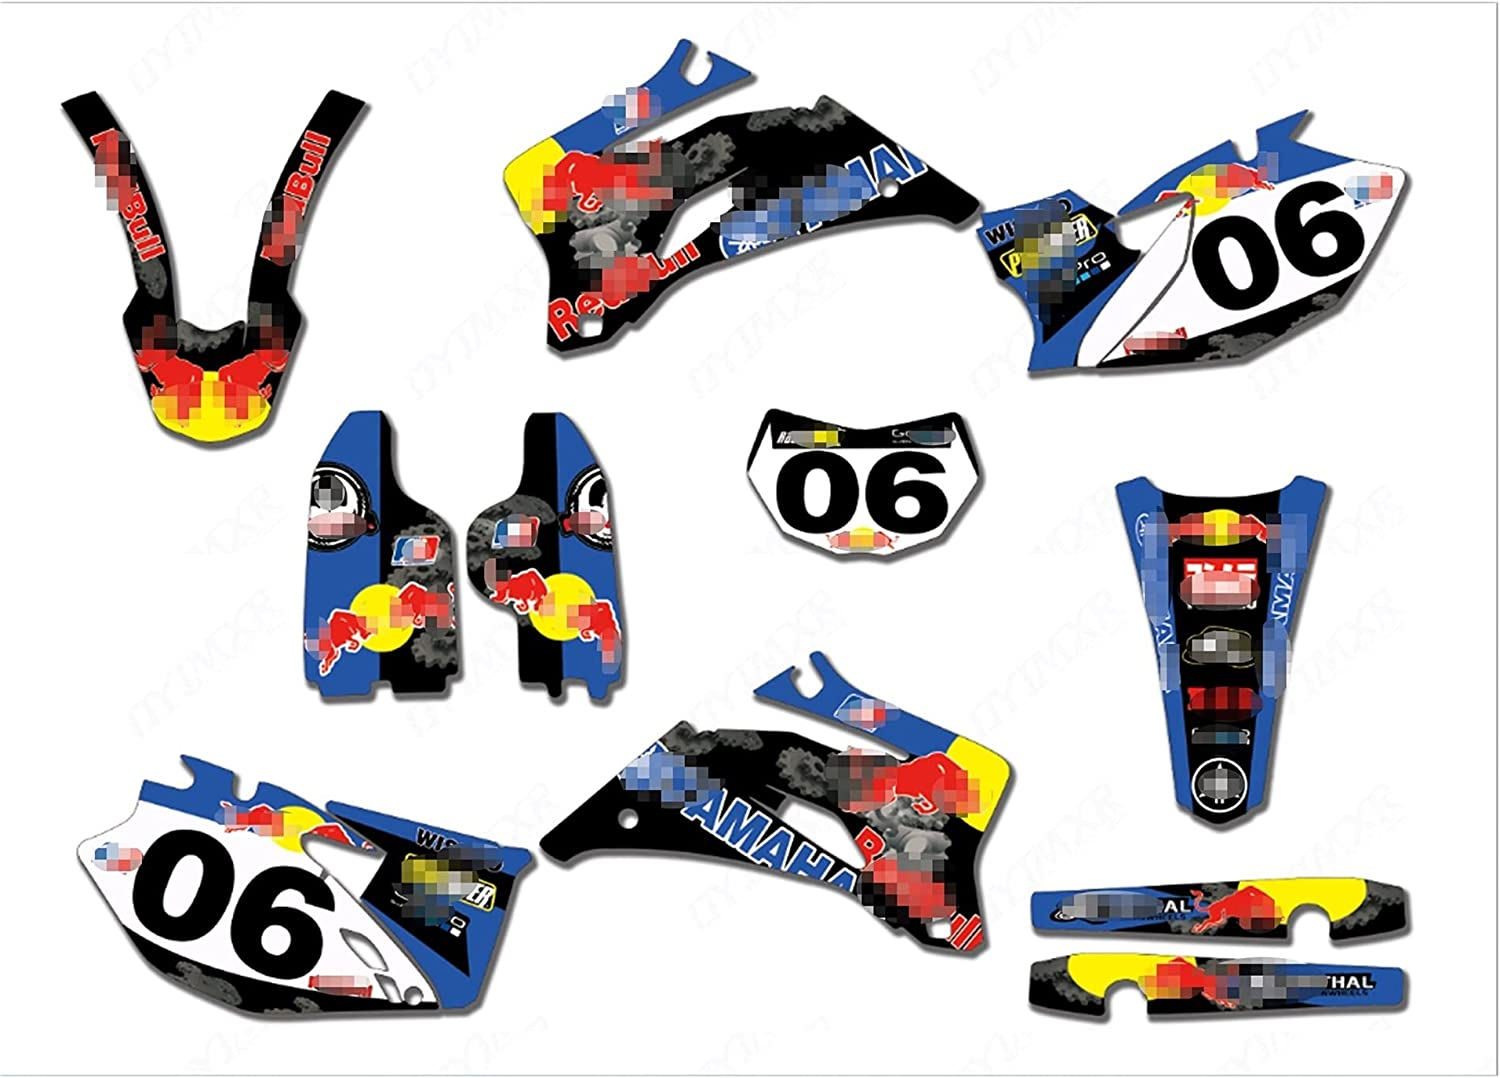 YHYPRESTER XYTZ85-22 4 years warranty Customized 3M Stickers Dealing full price reduction Motorcycle Decals Gr